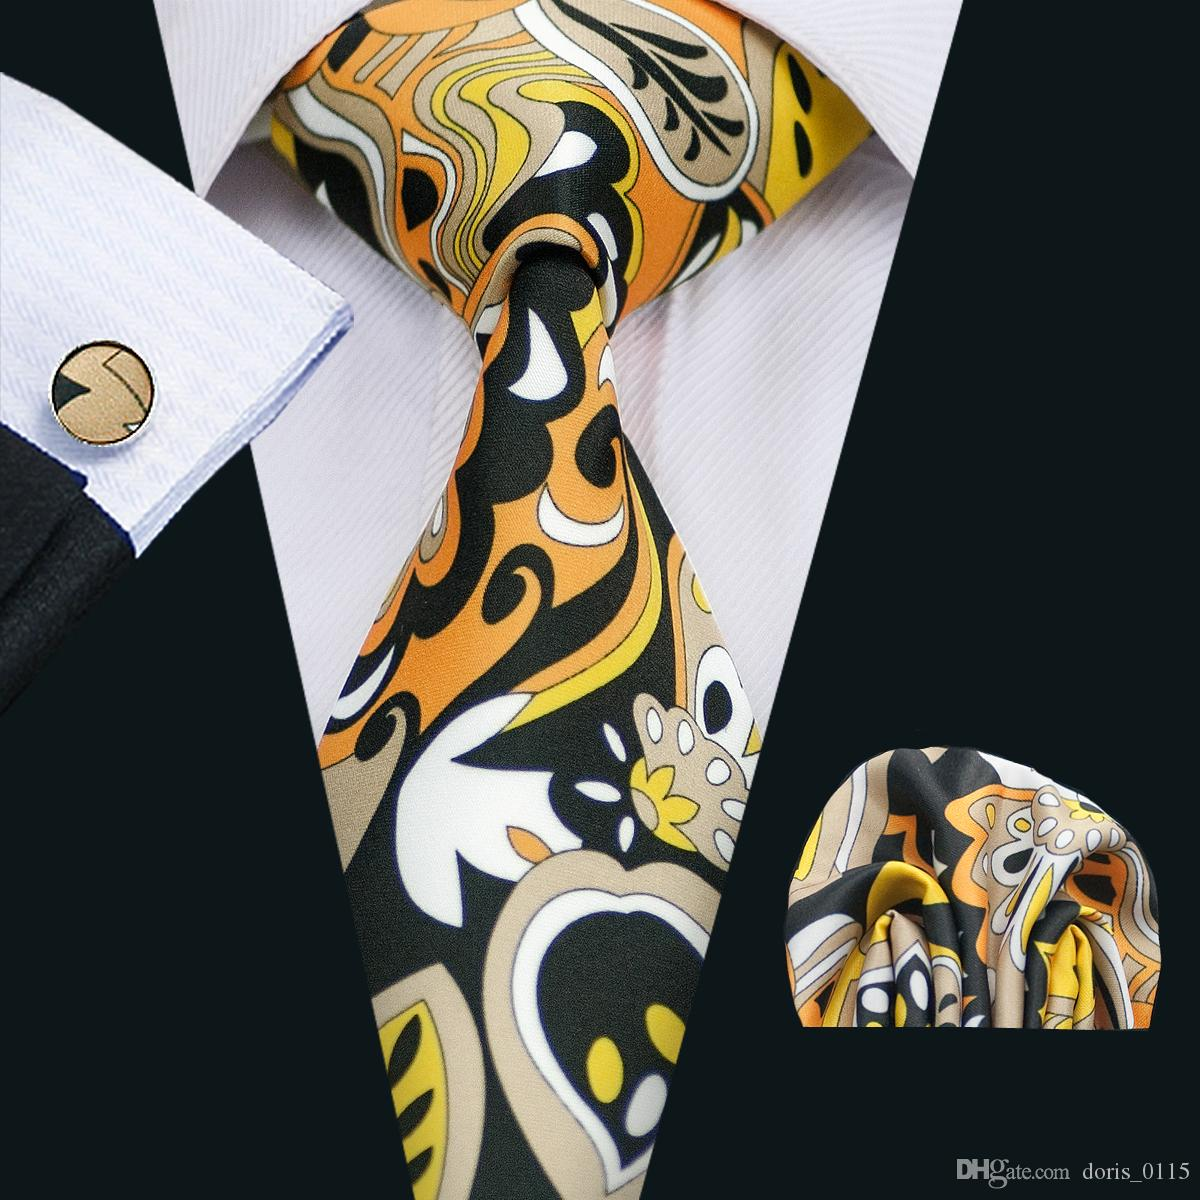 Men's Tie with Cufflinks Hanky New Arrival Yellow White Black Brown Mixed Color Silk Necktie Stylish Wide Classic Necktie N-1276